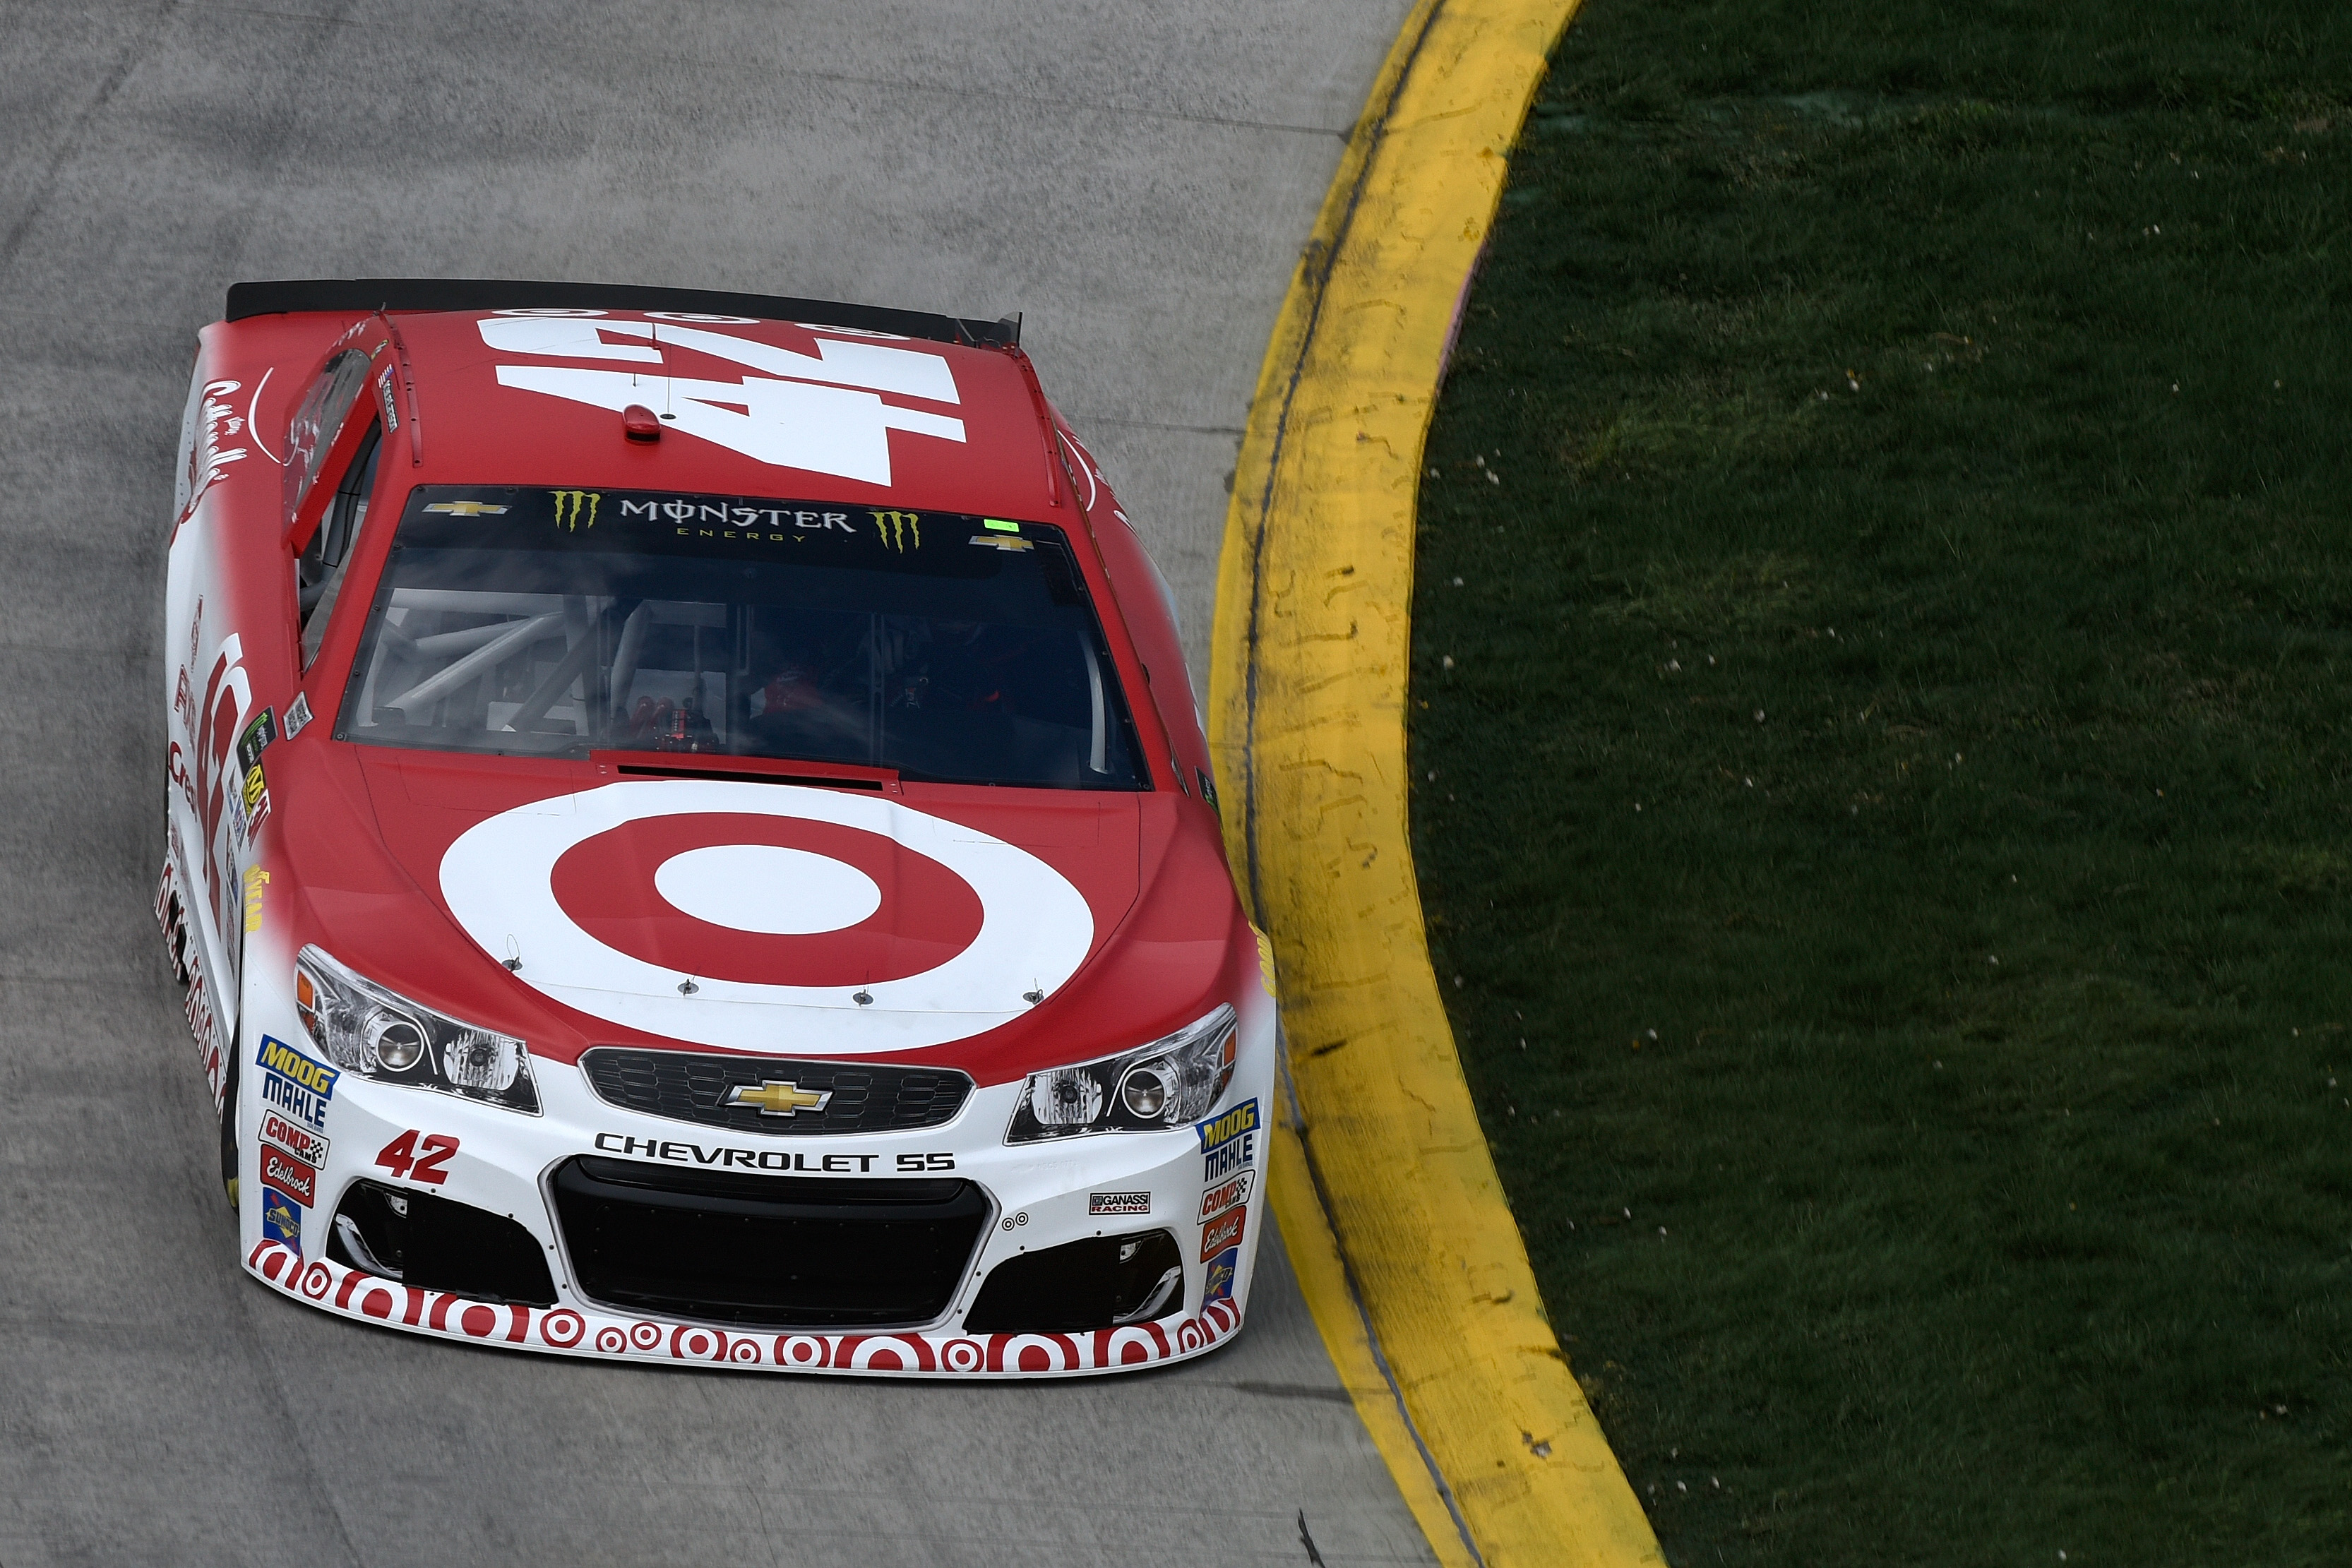 MARTINSVILLE, VA - MARCH 31: Kyle Larson, driver of the #42 Target Chevrolet, practices for the Monster Energy NASCAR Cup Series STP 500 at Martinsville Speedway on March 31, 2017 in Martinsville, Virginia.  (Photo by Jared C. Tilton/Getty Images)